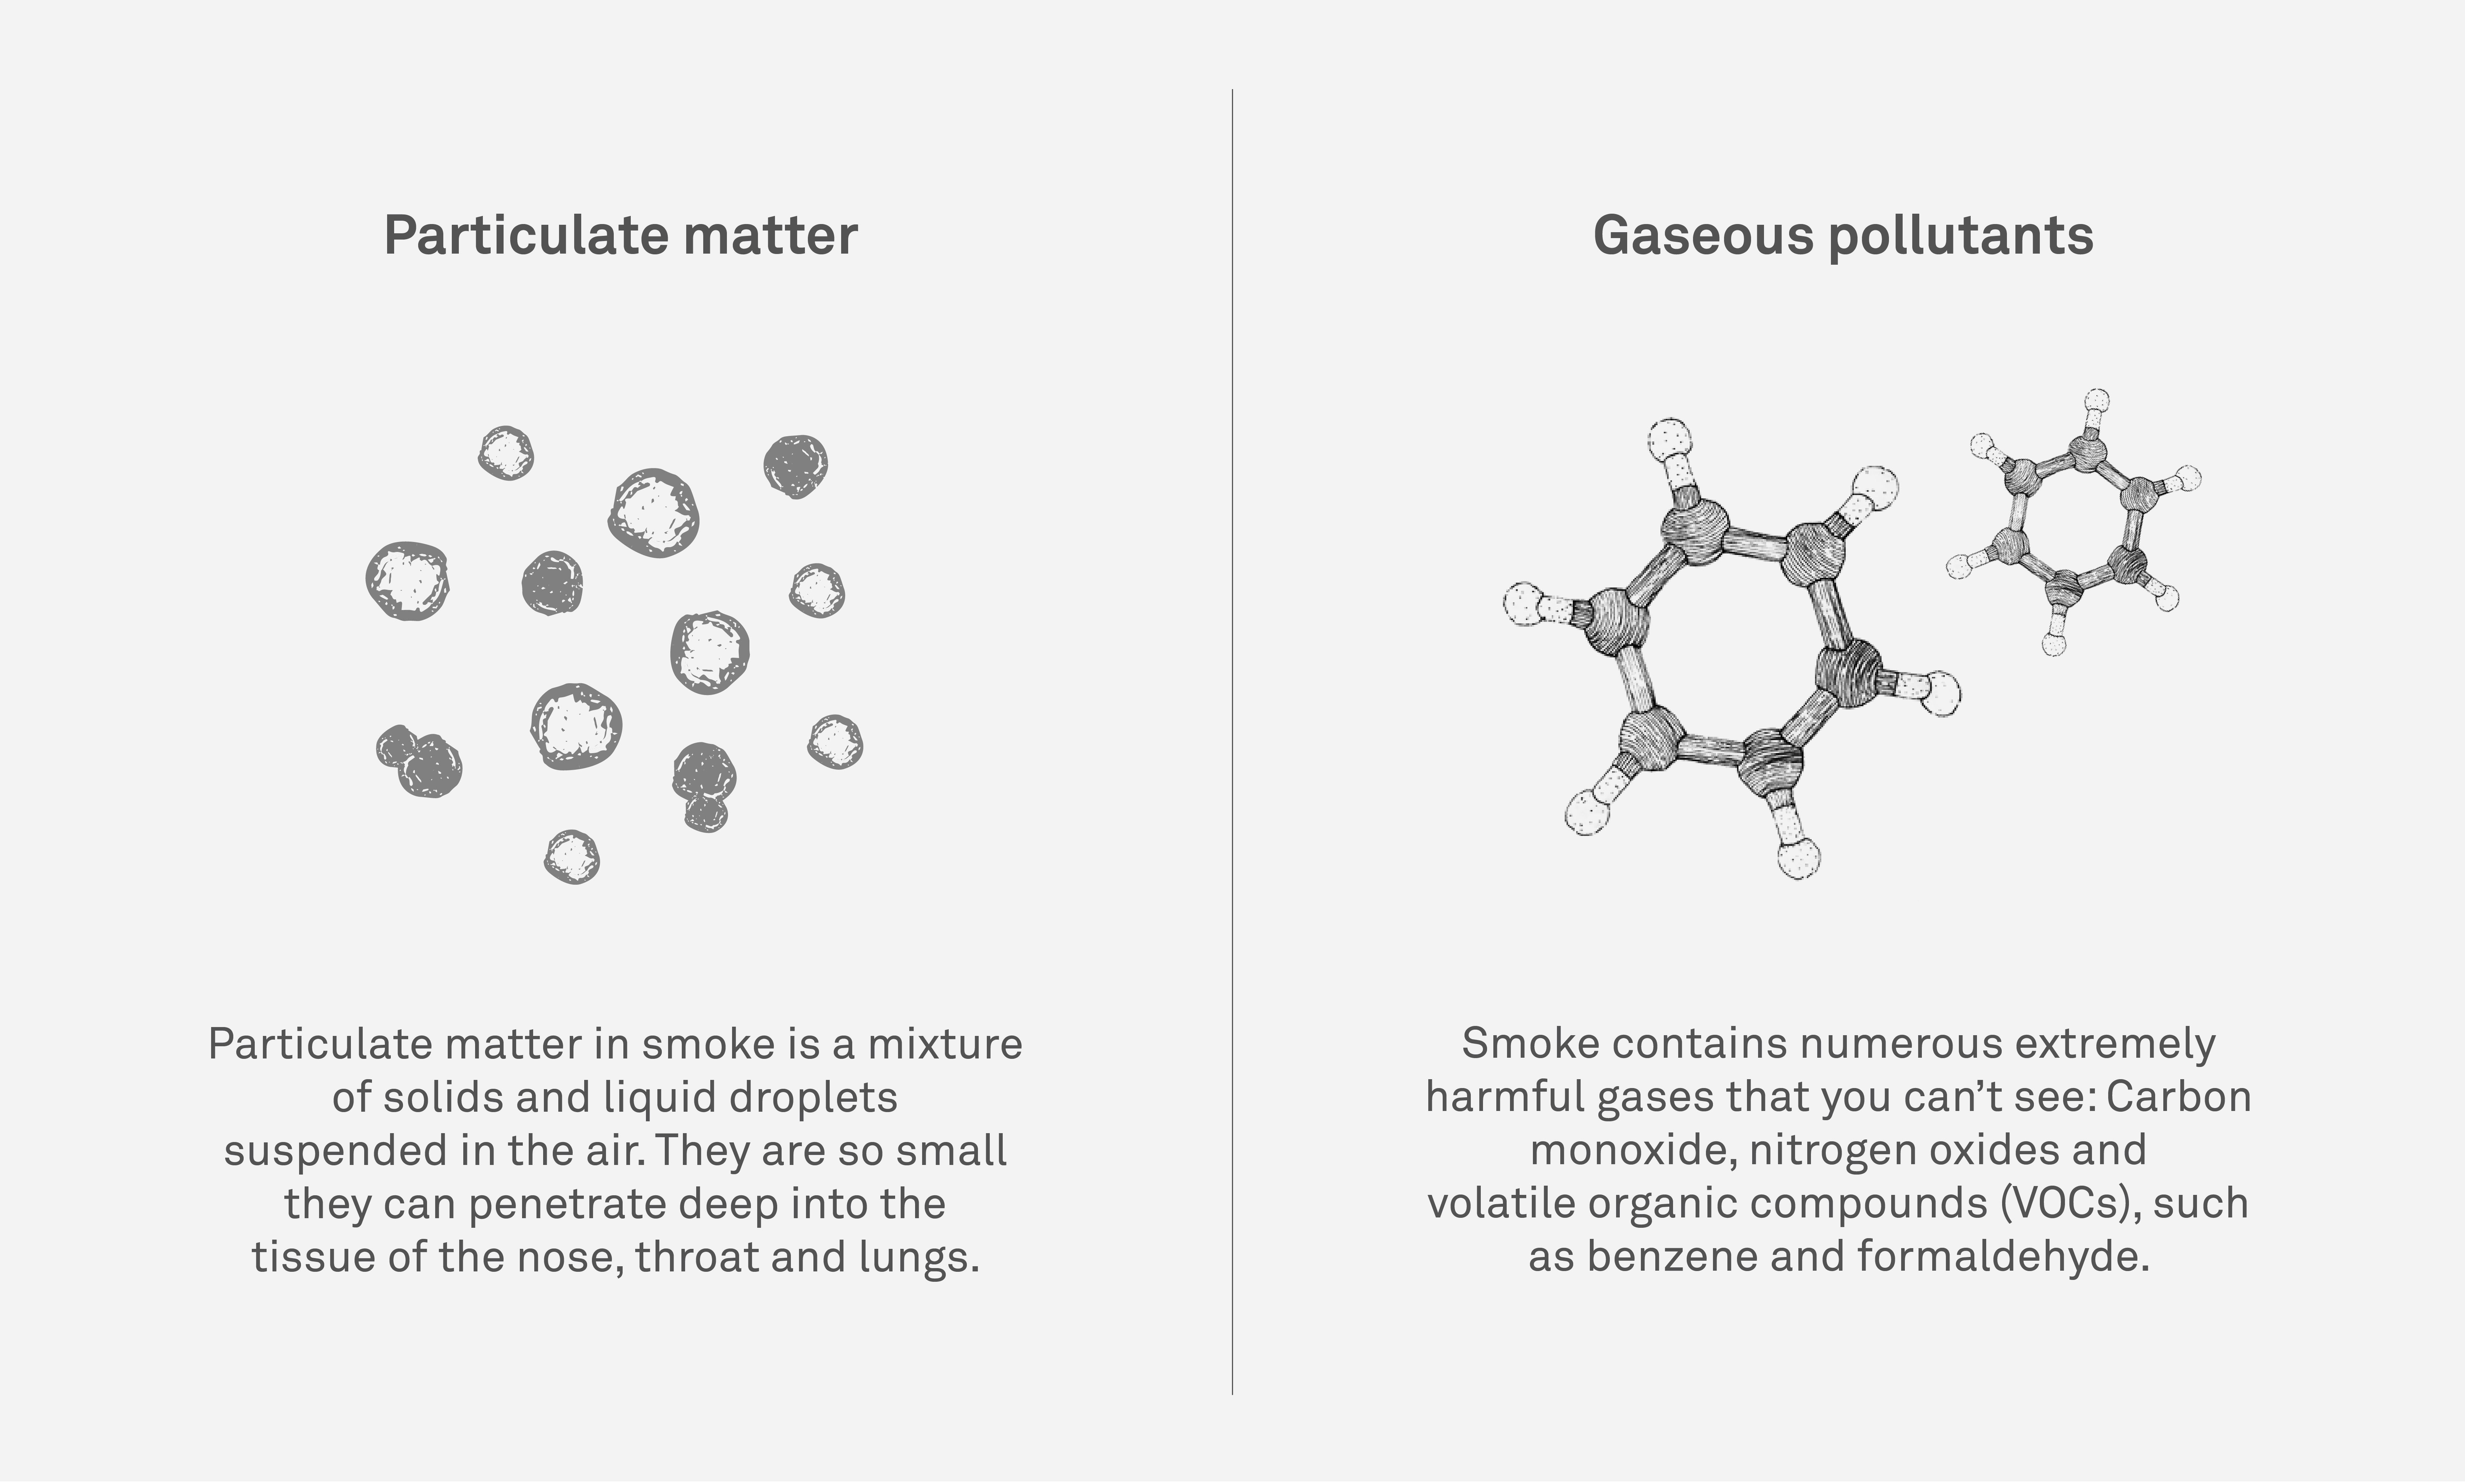 best air purifier for smoke - pollutants diagram of particles and gases